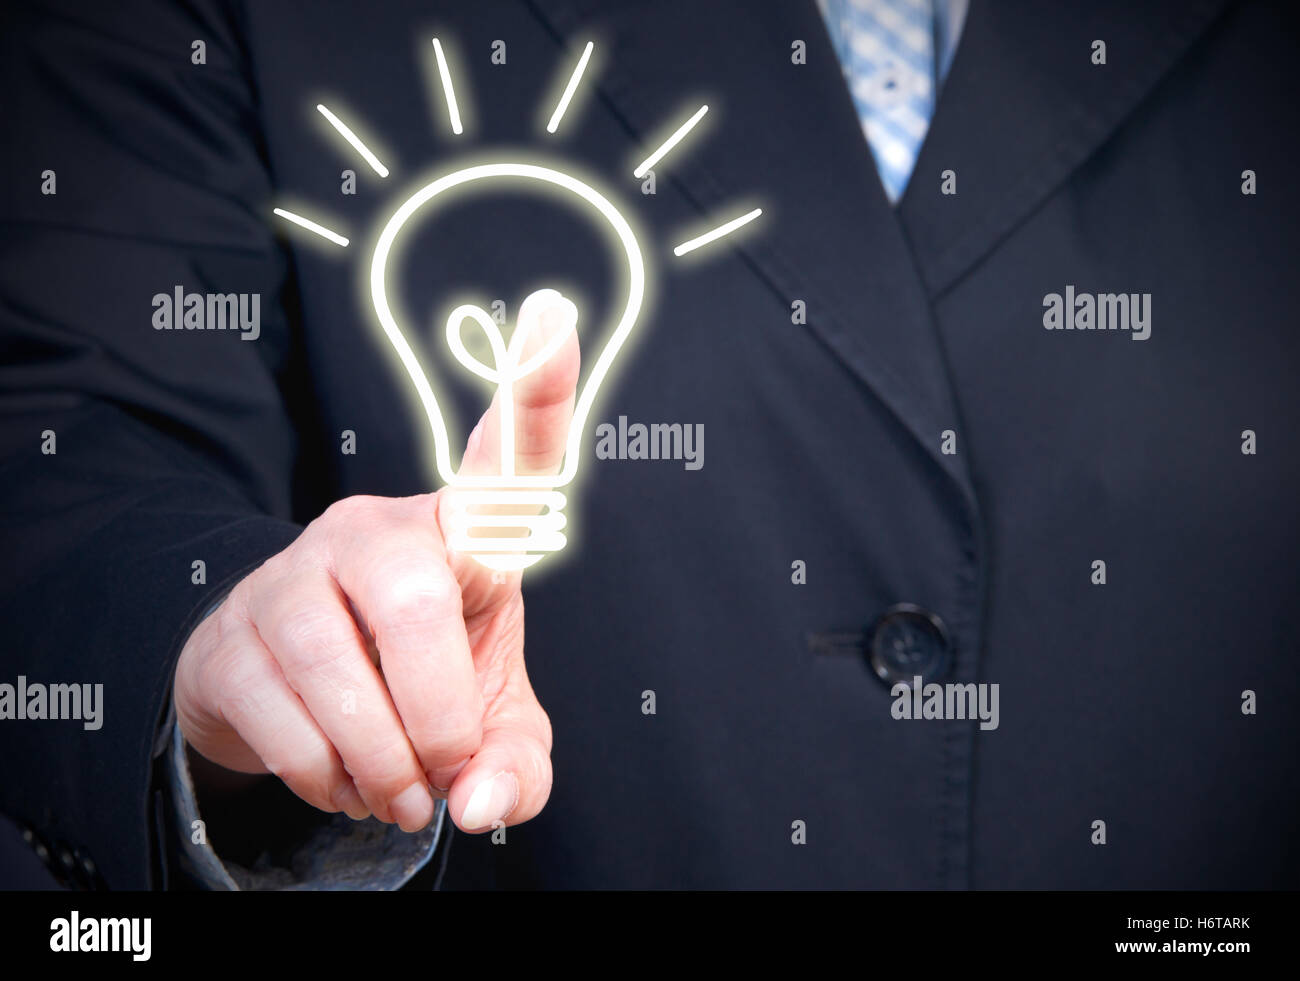 ideas and innovations - Stock Image